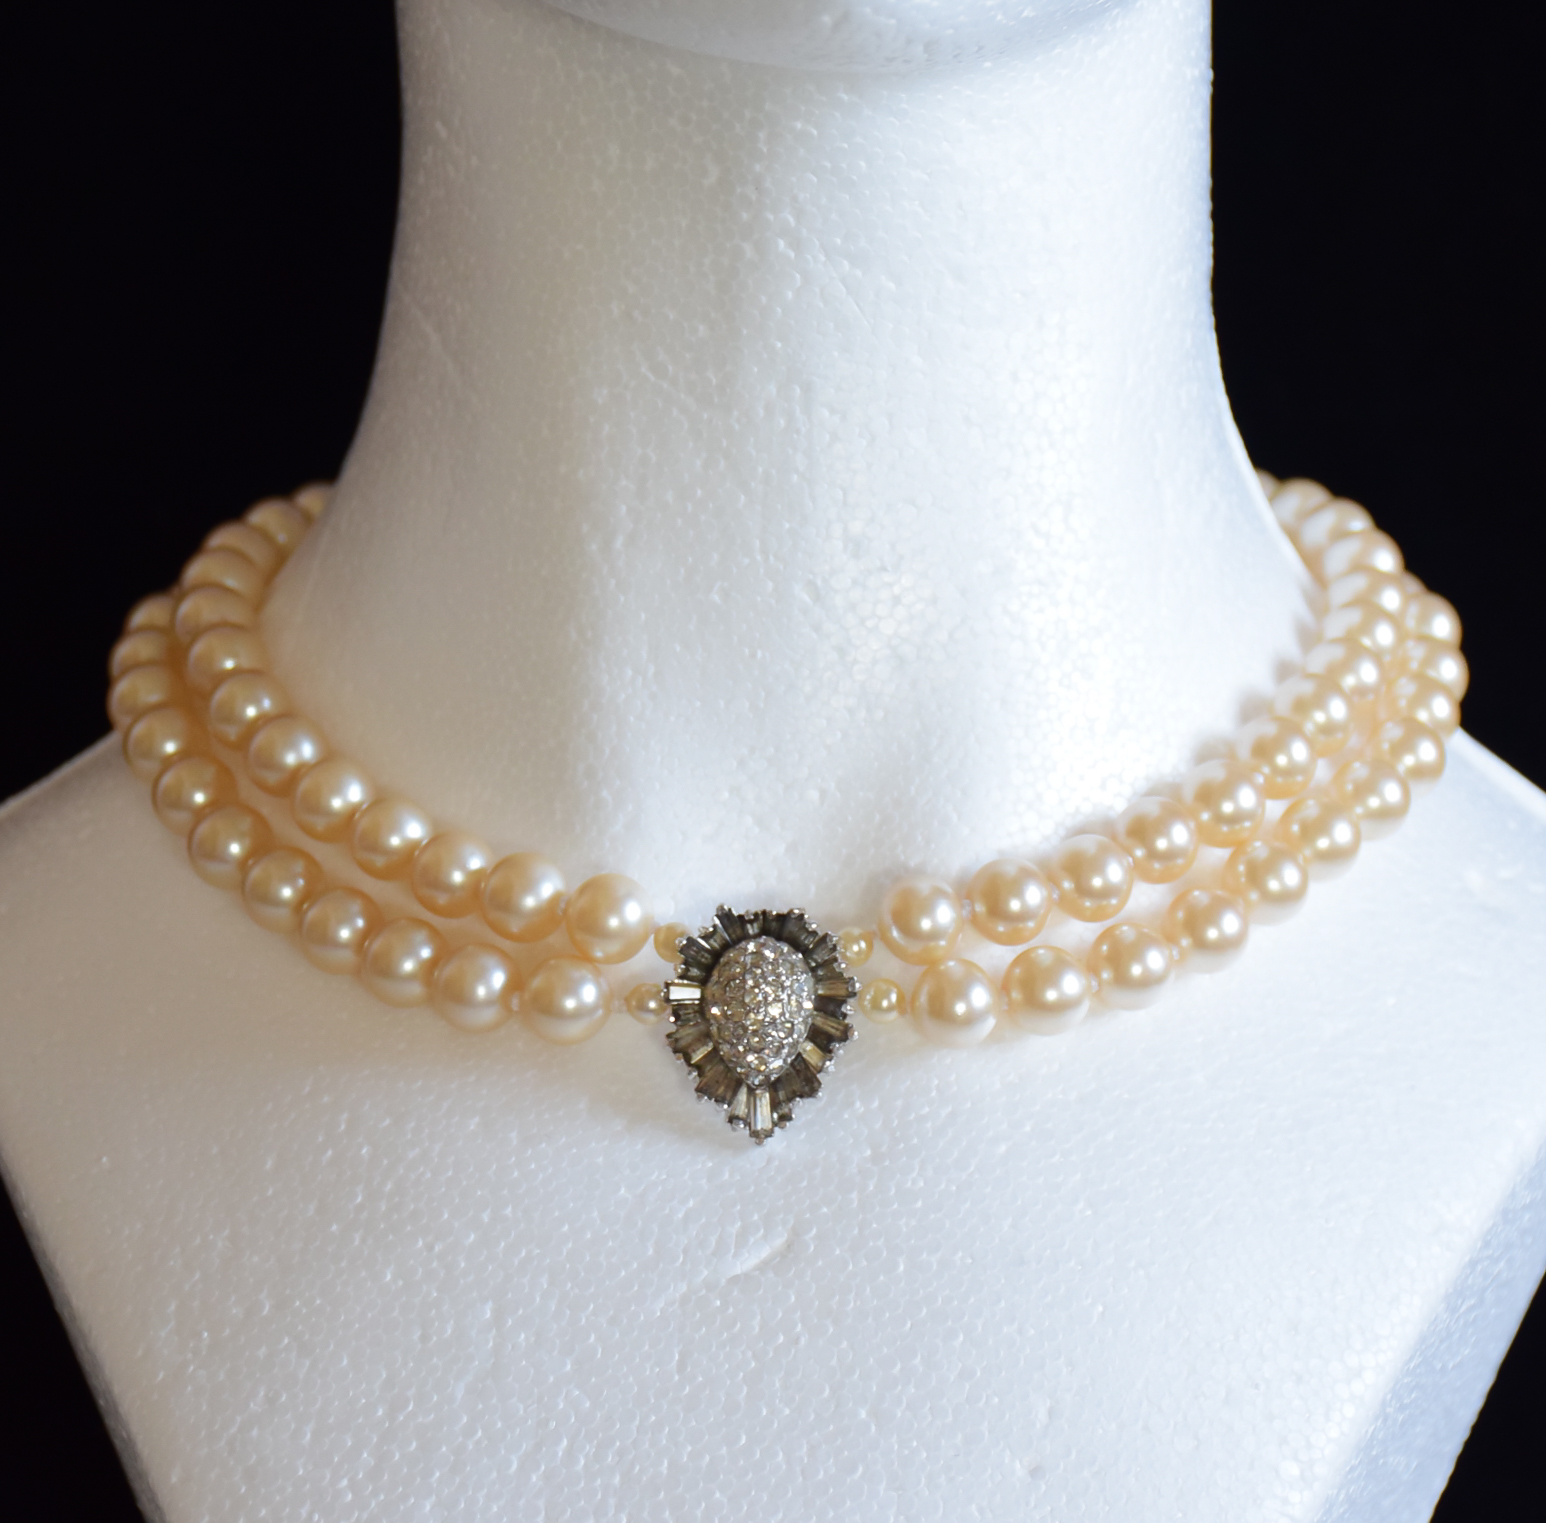 blossom jewellery pearl zoom necklace necklaces devoted alan gold freshwater crystal hannah